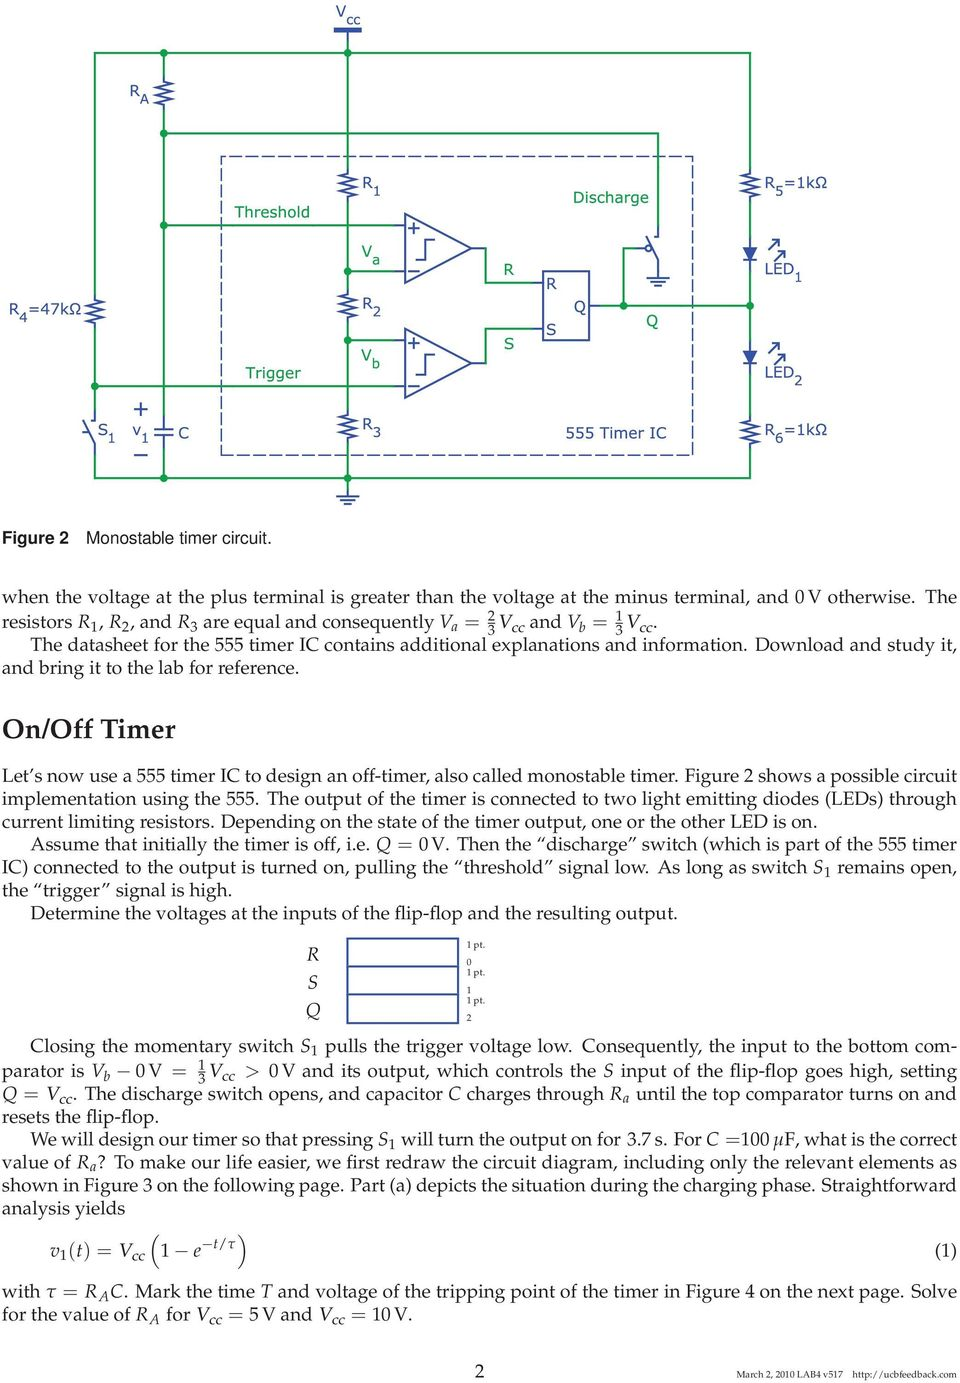 The 555 Timer Ic Uc Berkeley Eecs Department 40 42 100 Lab Pulse Position Modulator Circuit 555circuit Diagram Download And Study It Bring To For Reference On 3 Figure Partial